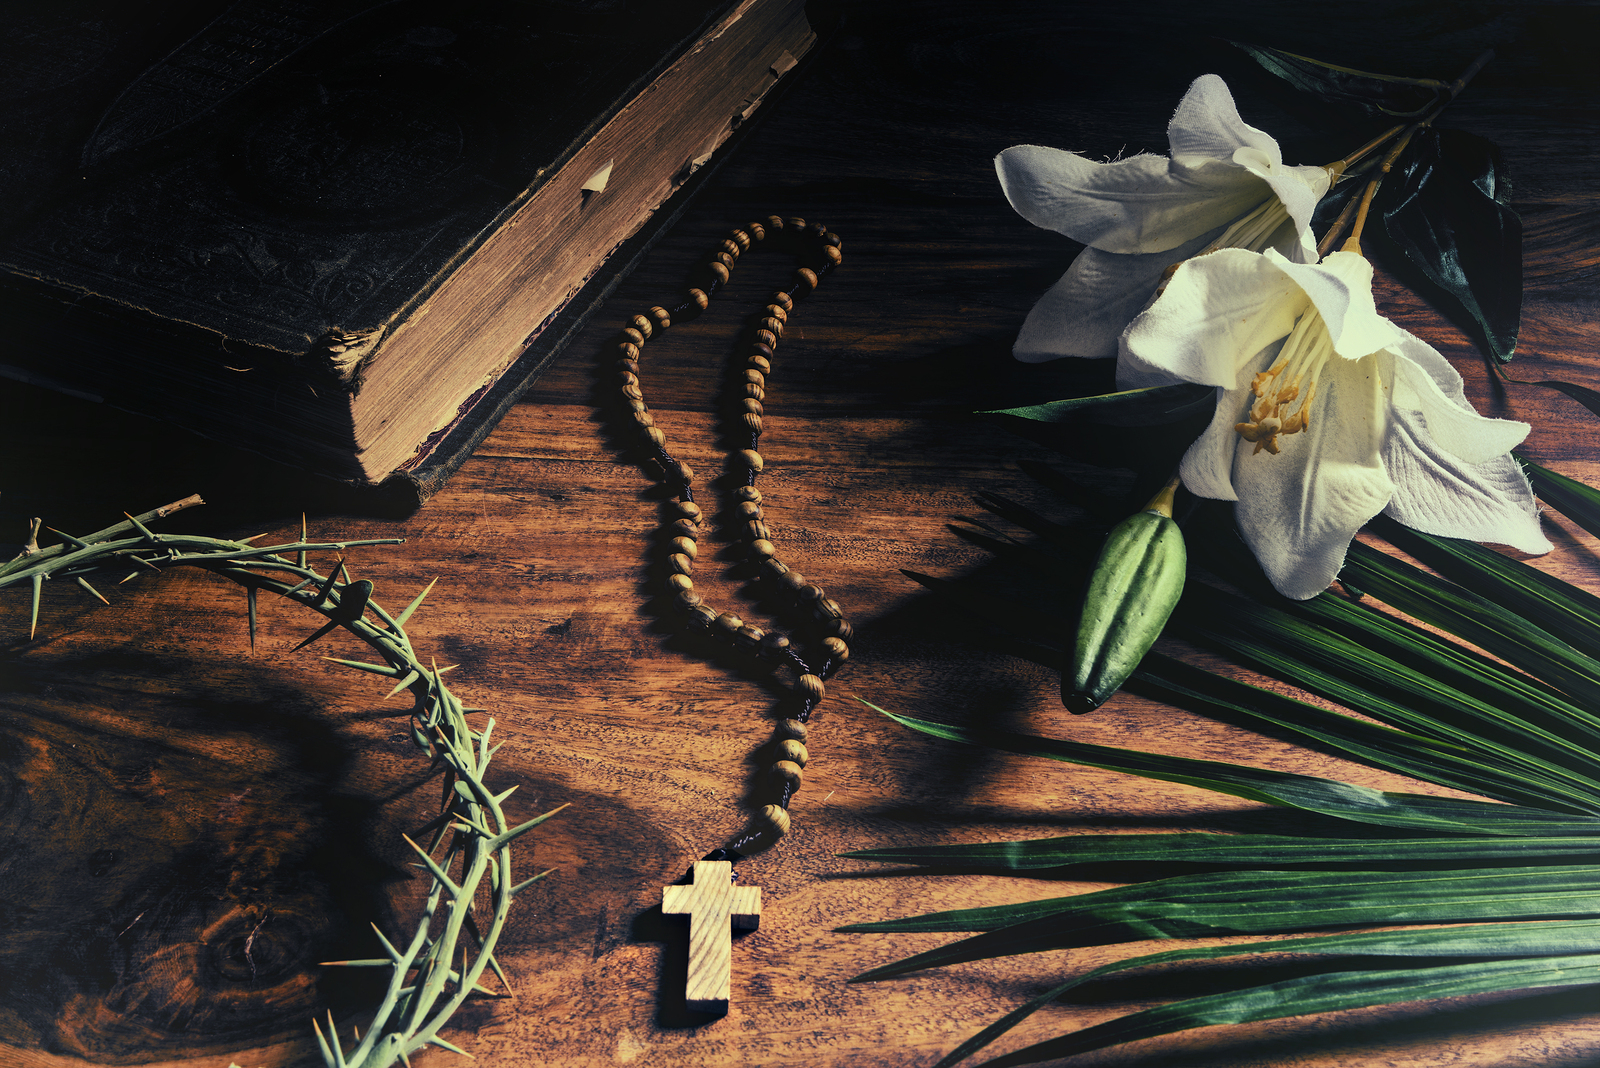 The Triumph Passion Crucifixion and Resurrection. Iconic Christian symbols representing events from Palm Sunday to Easter rest upon a rustic table along with a 19th century antique bible - palm branch crown of thorns cross and white lily.